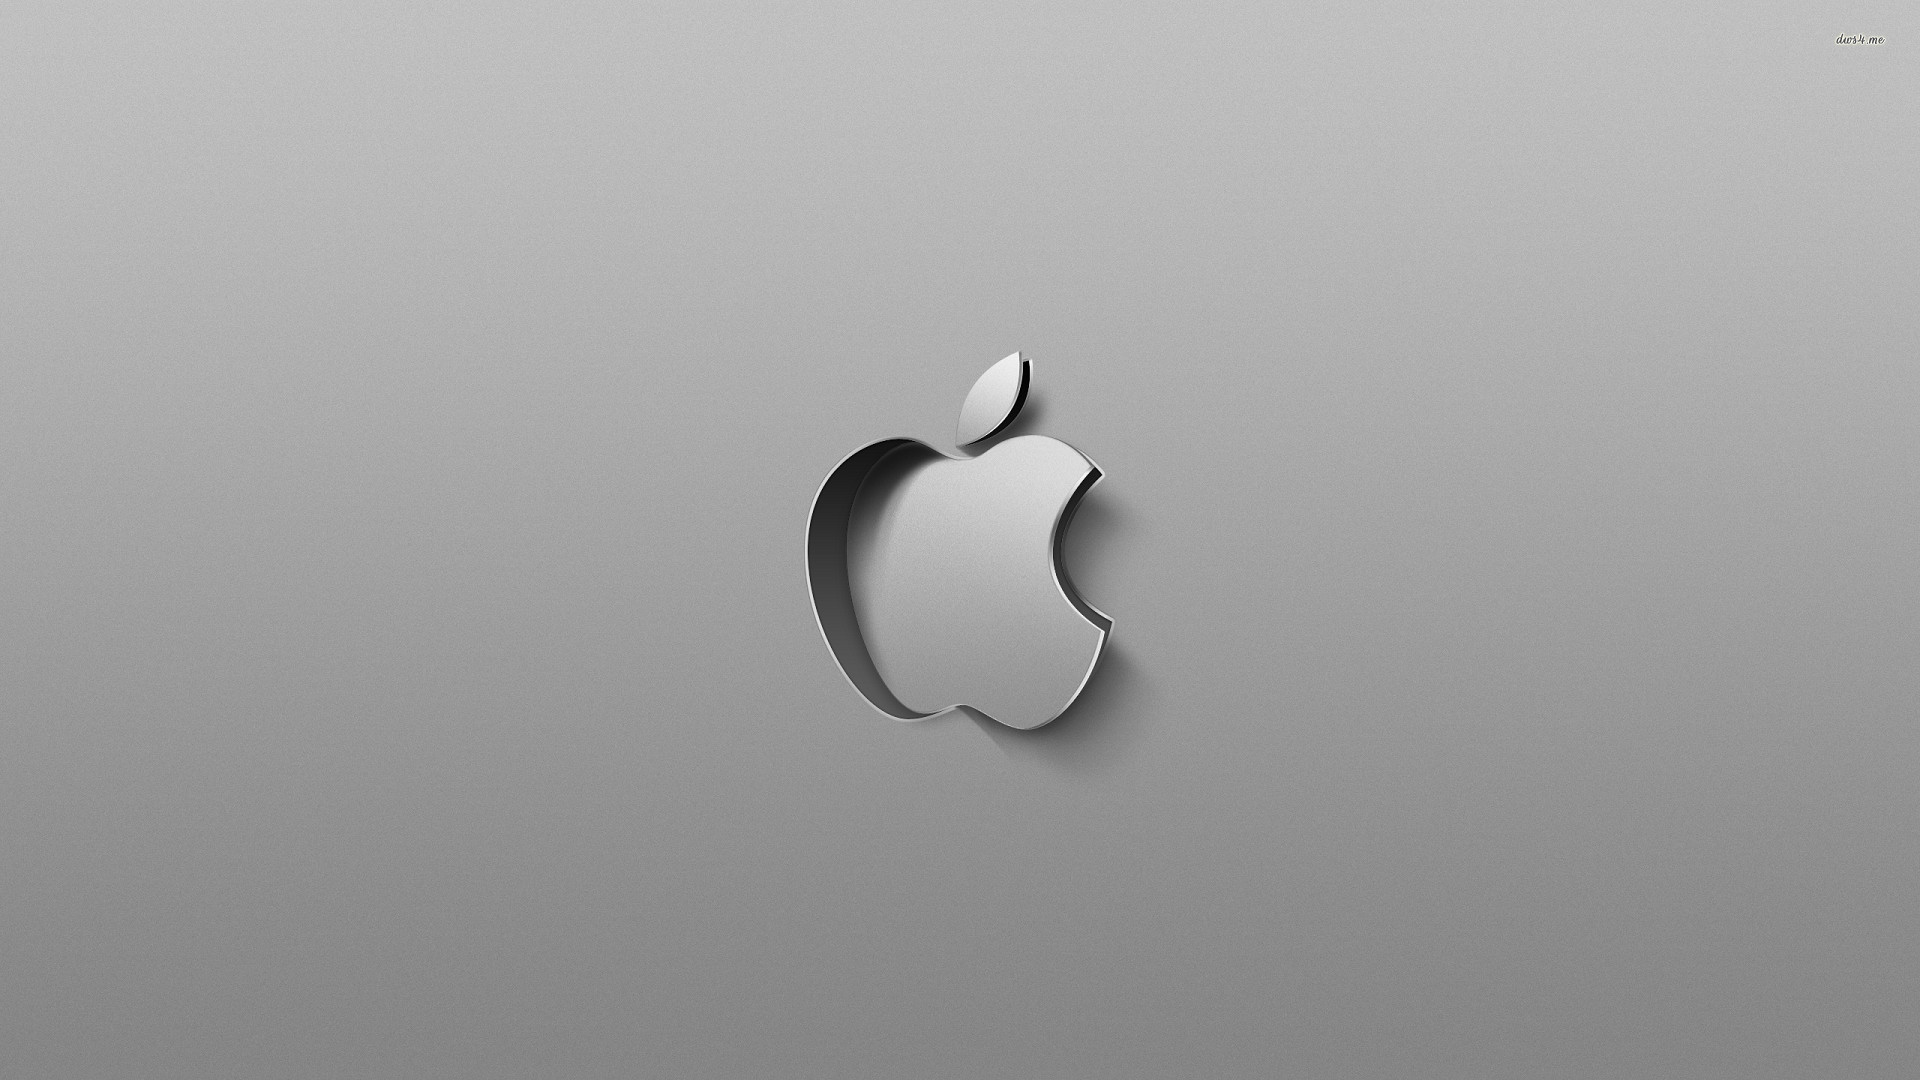 apple 3d wallpapers (71+ background pictures)